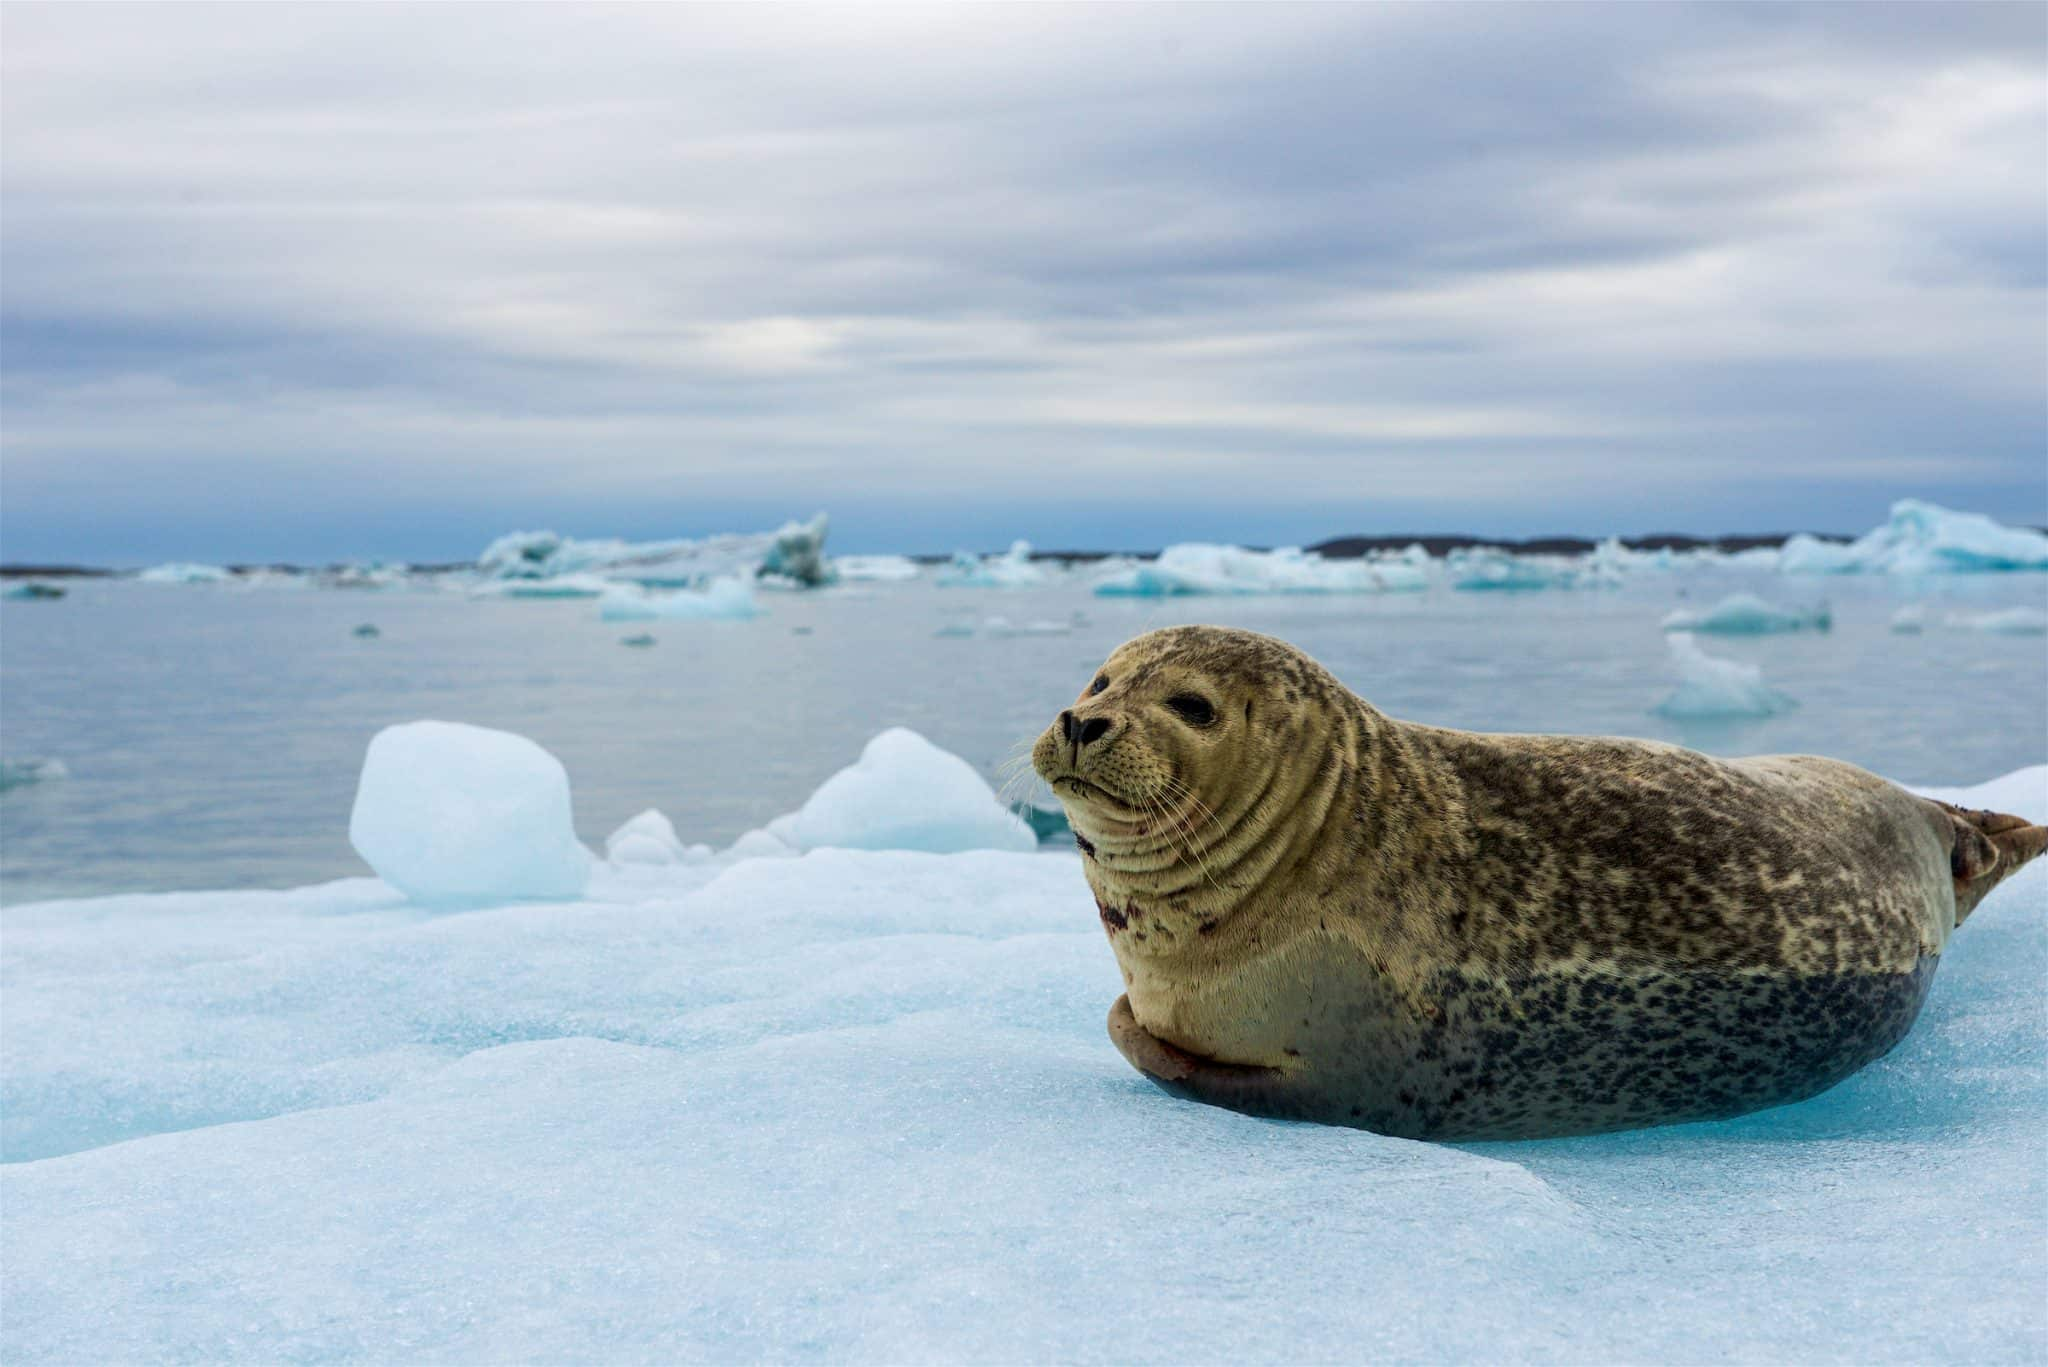 Seal resting on floating iceberg in a glacier lagoon with mountains and icebergs on the background